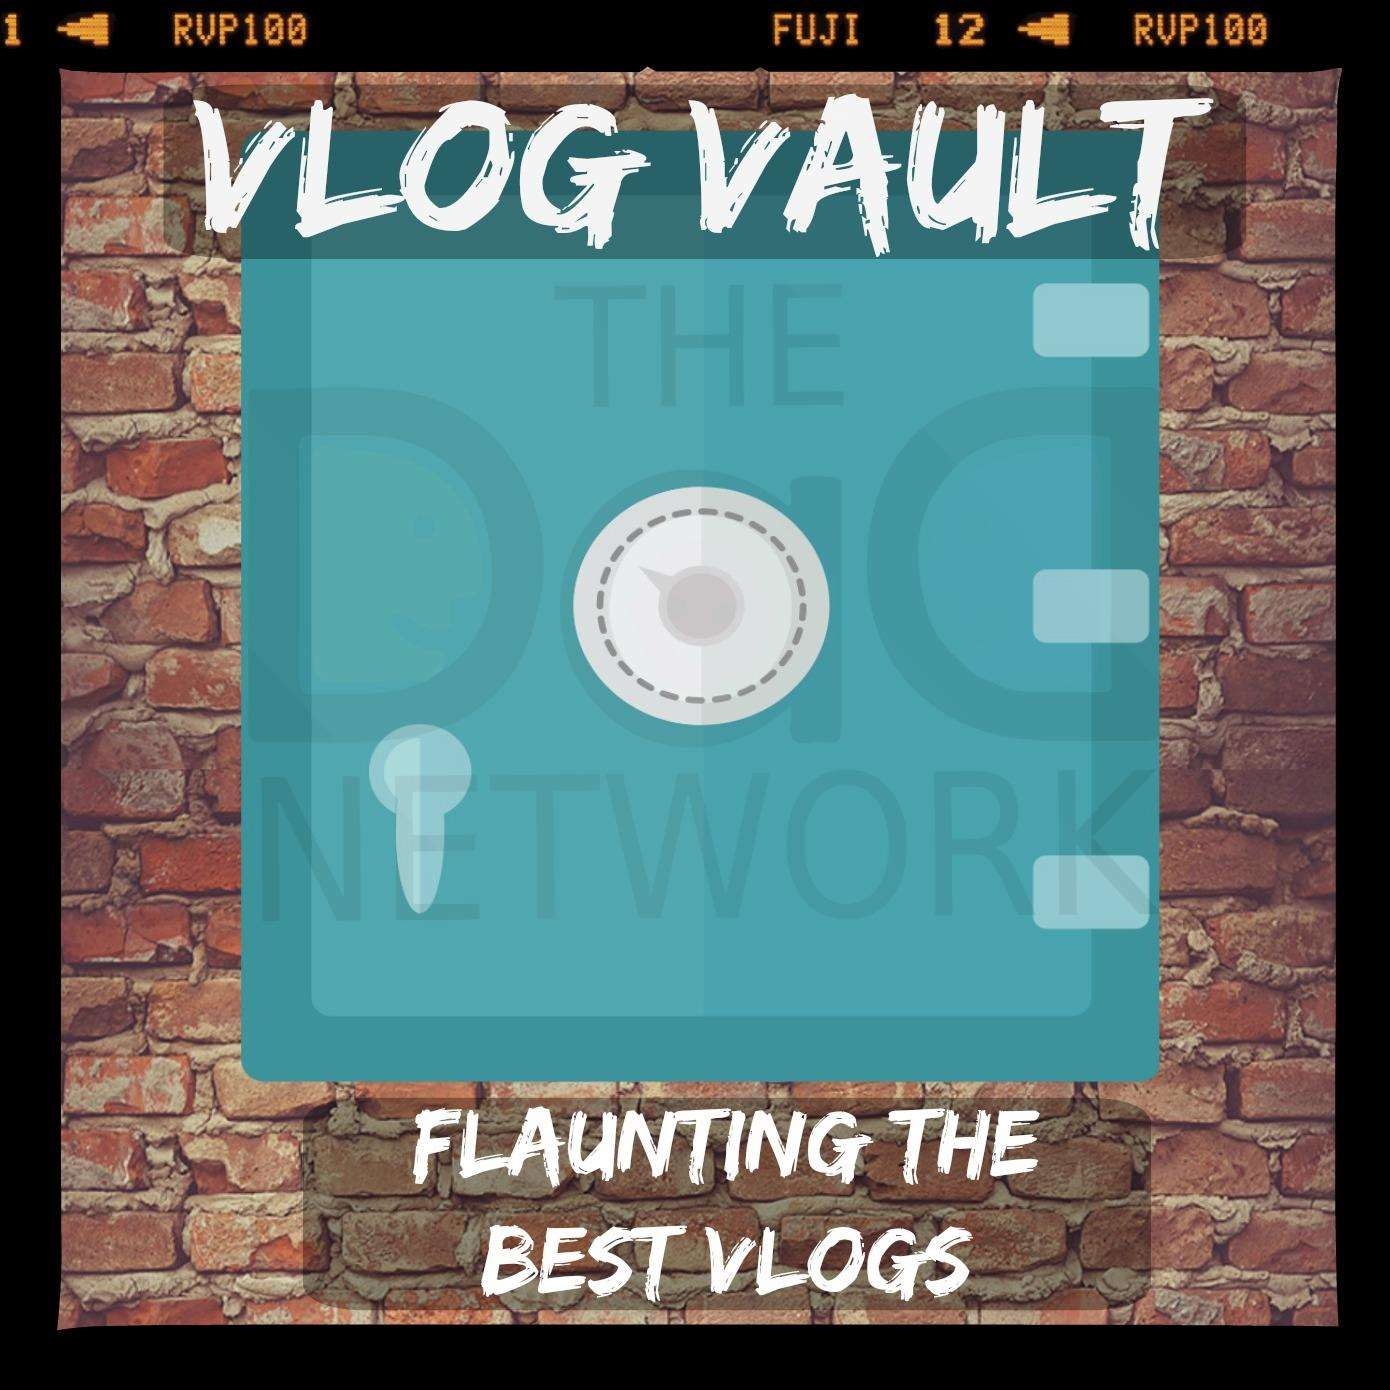 The Vlog Vault #3, Vlog Vault%, uncategorised%